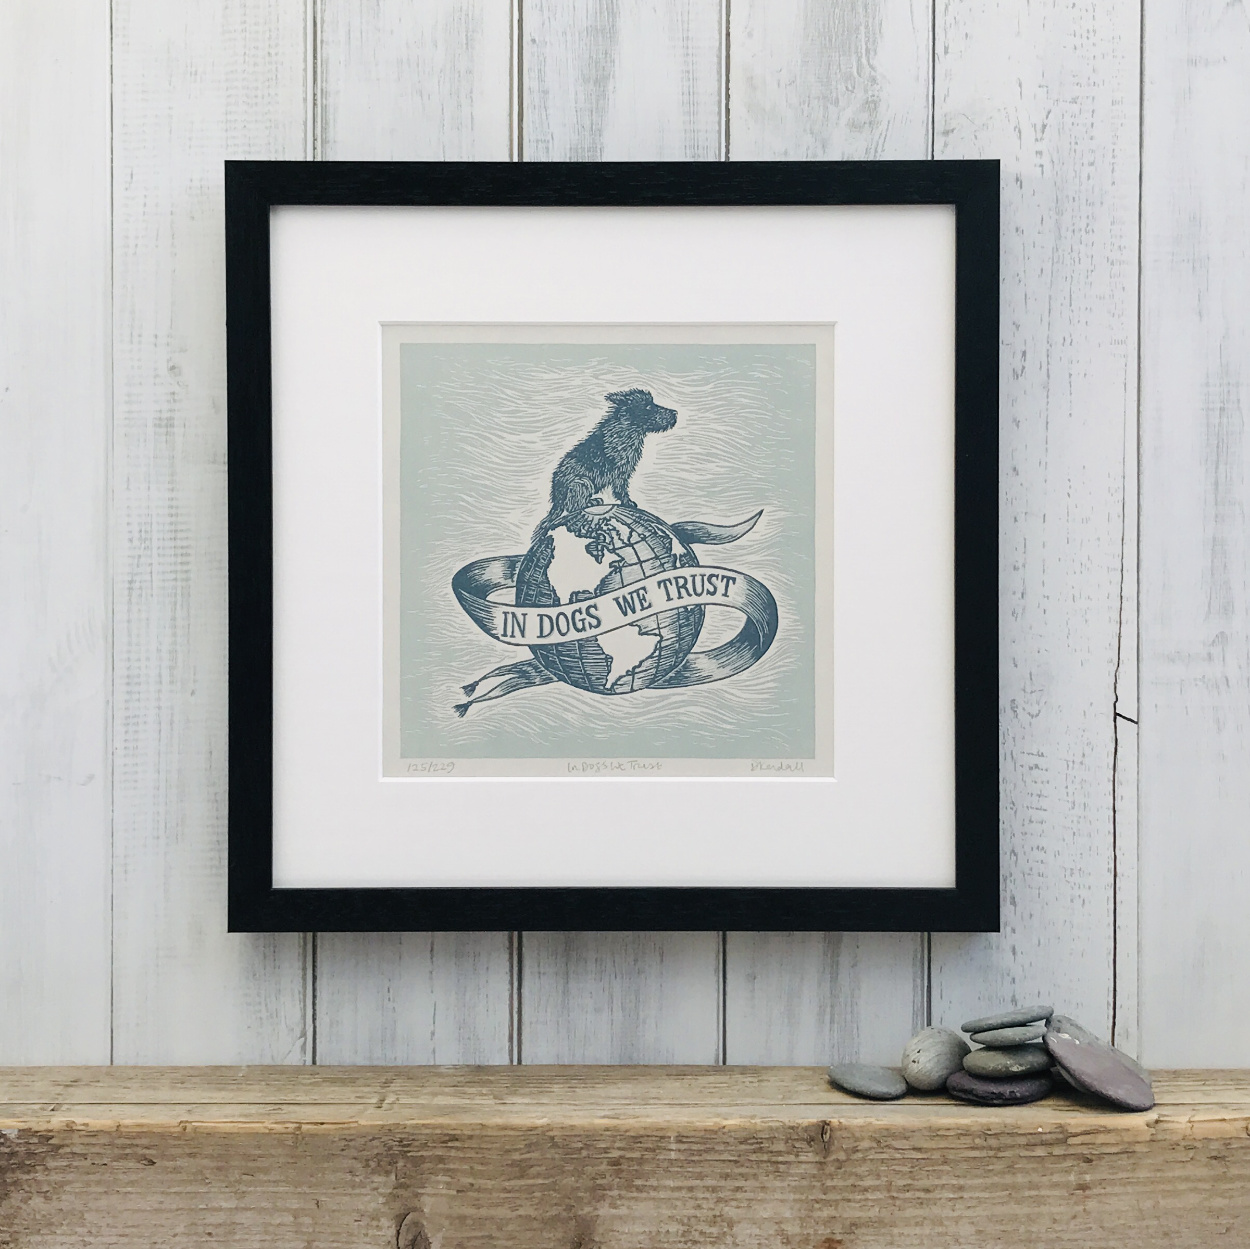 In Dogs We Trust Limited Edition Blue Linoprint | The Enlightened Hound